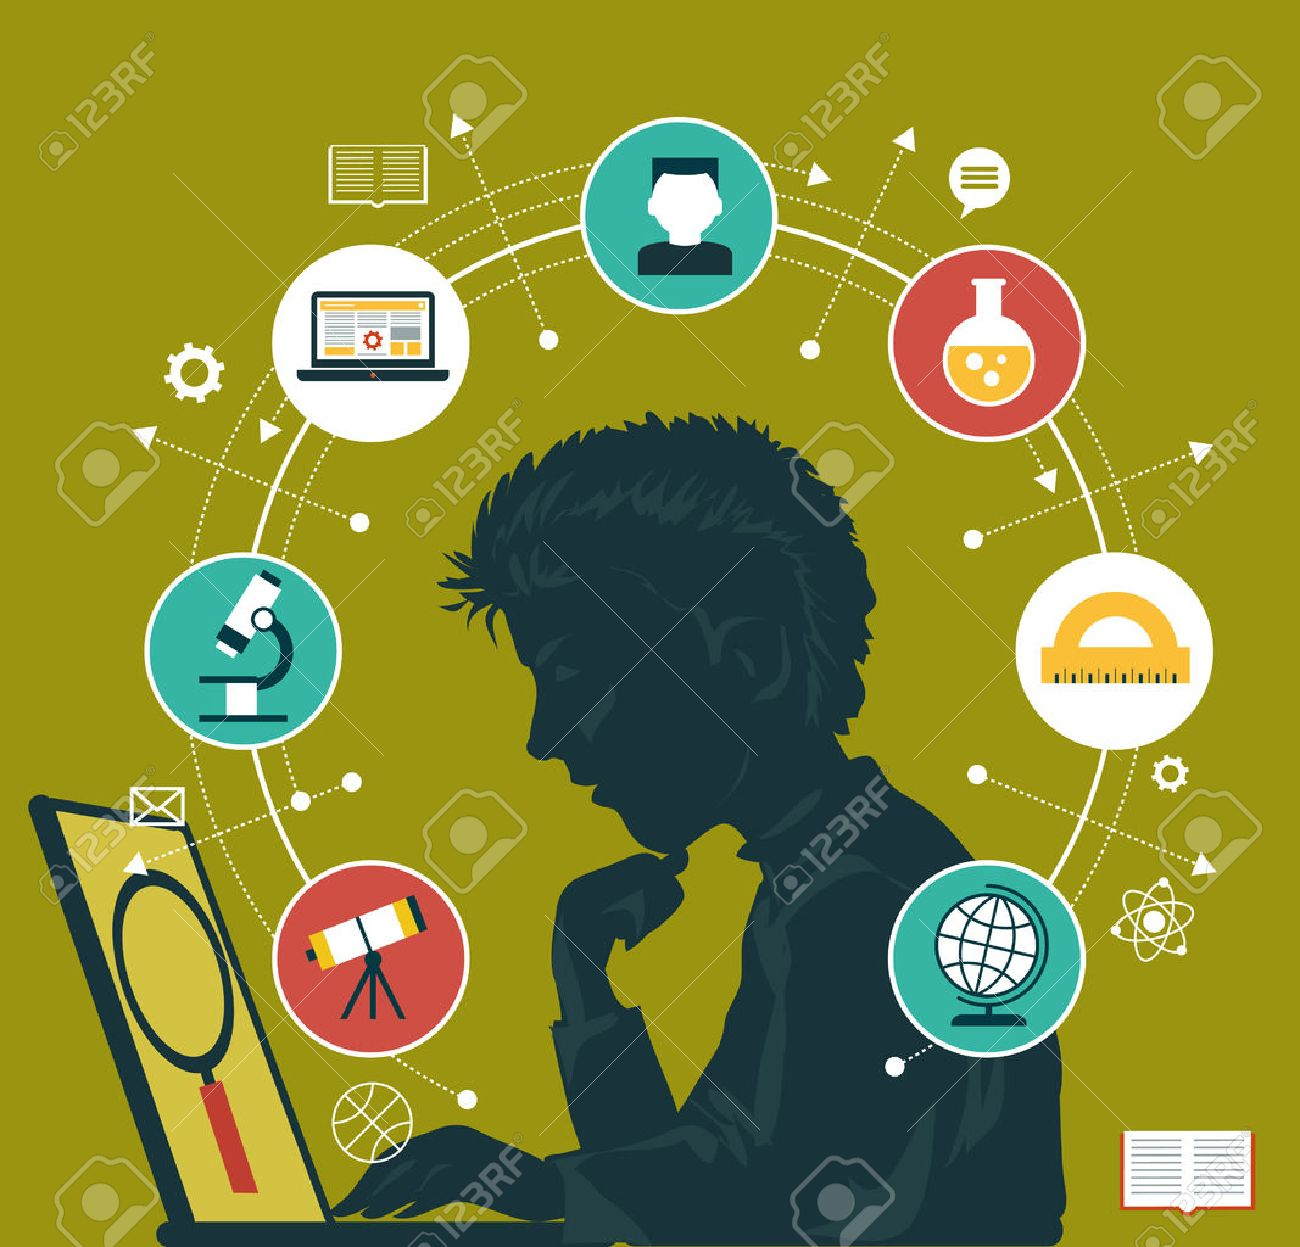 The concept of choosing a future profession. Icons education. Silhouette of a boy with a laptop surrounded by icons of education. - 46515297